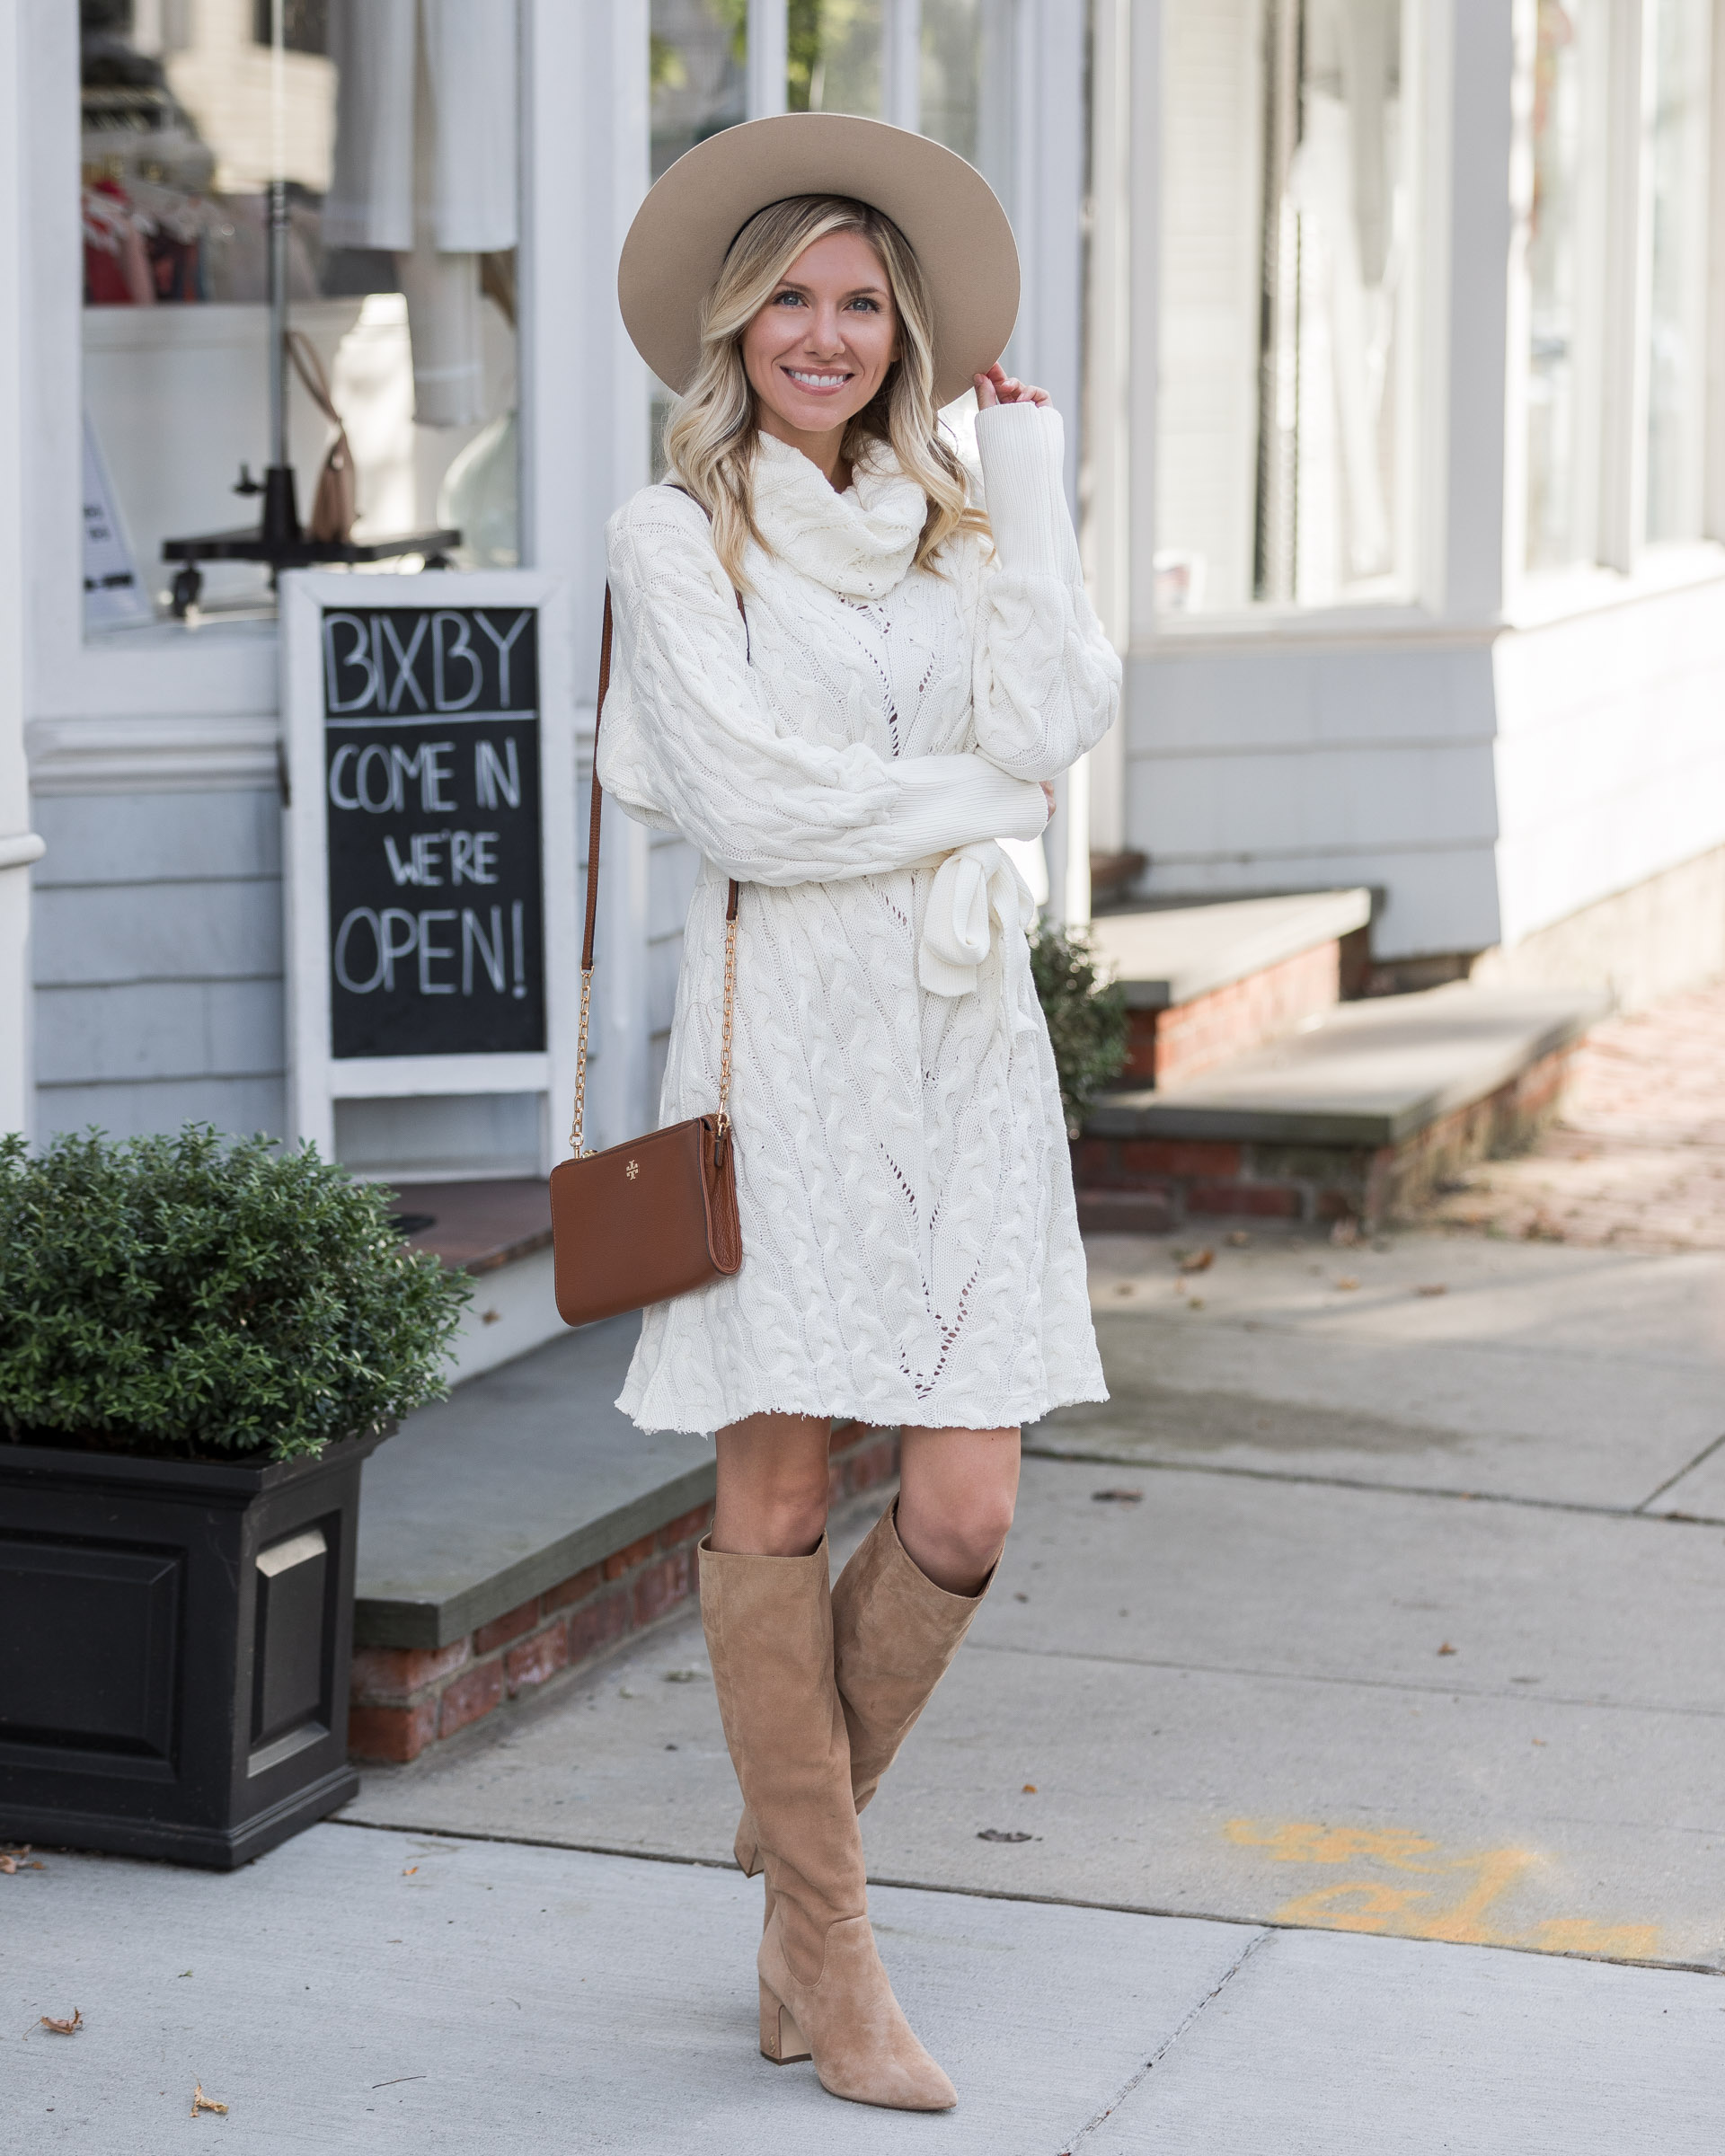 neutral-felt-hat-and-cozy-sweater-dress-the-glamorous-gal